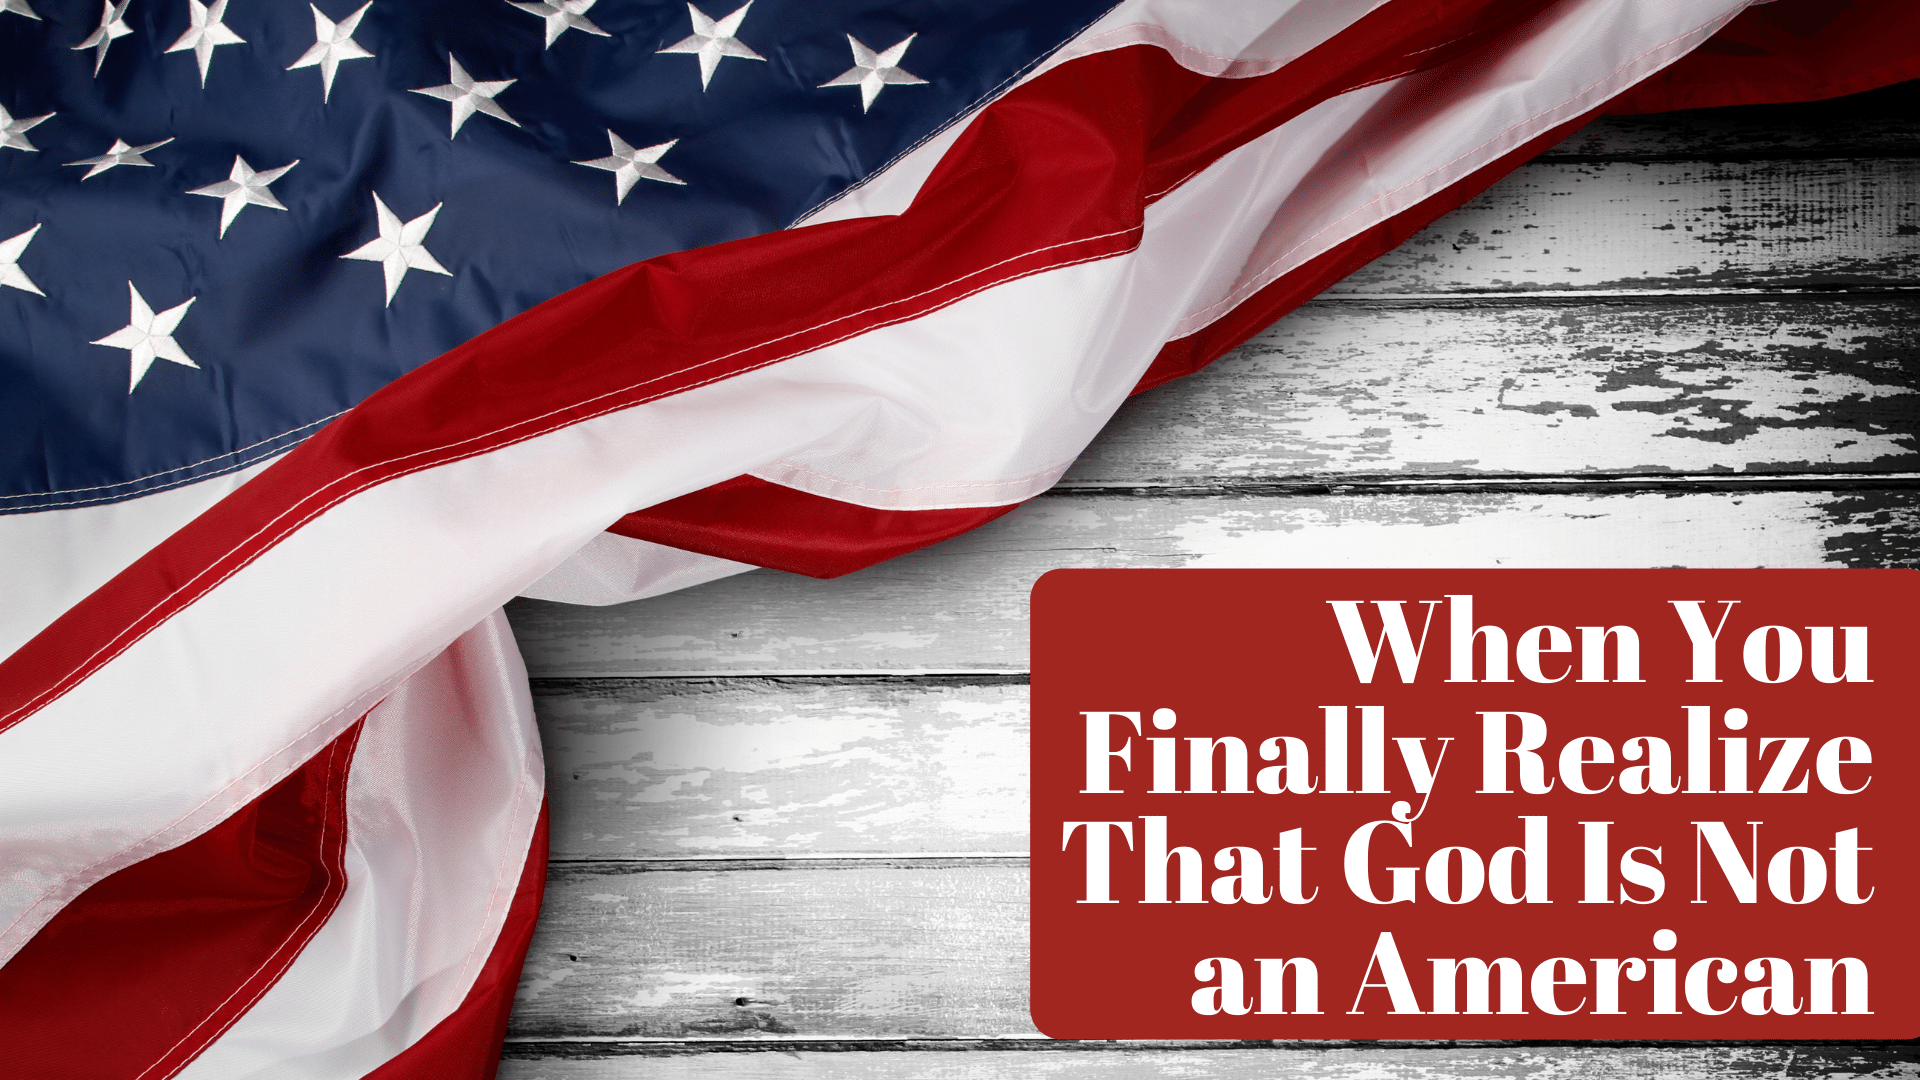 When You Finally Realize That God Is Not an American